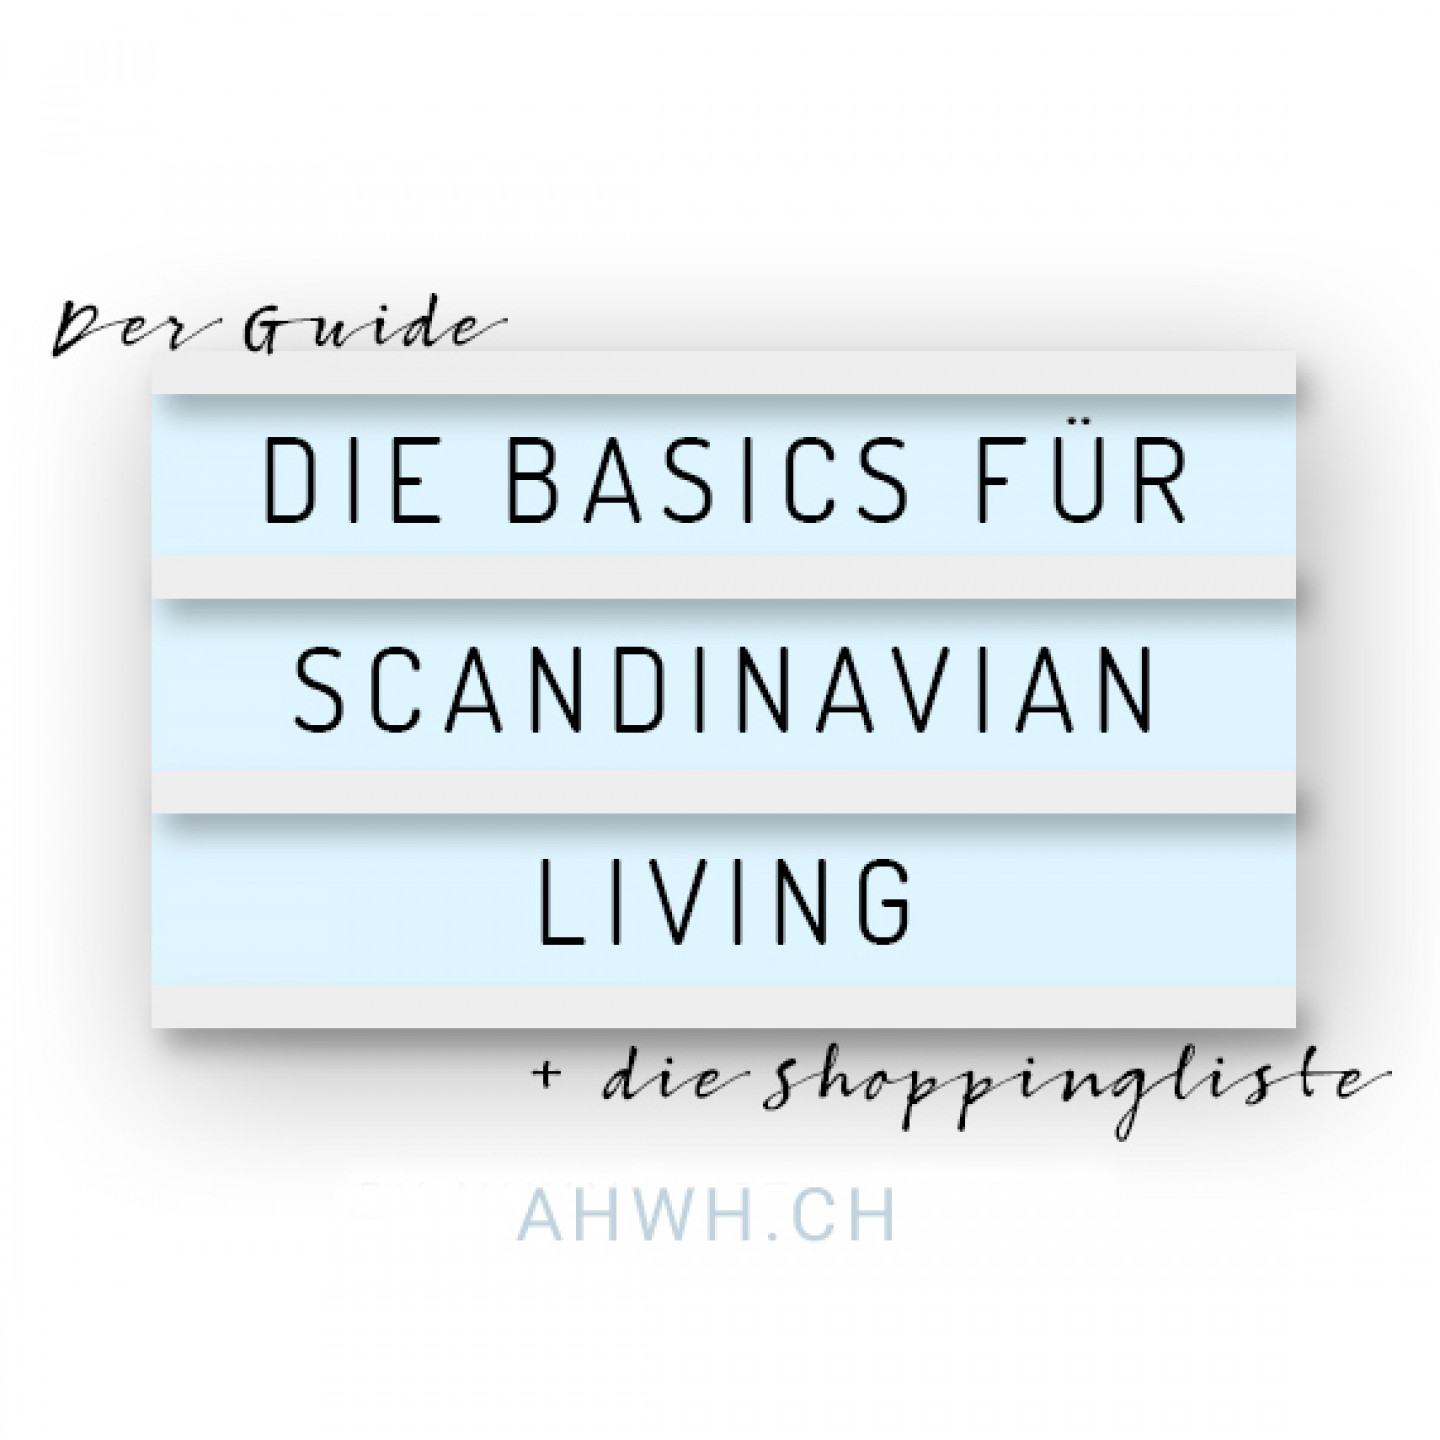 Scandiliving guide AHWHCH